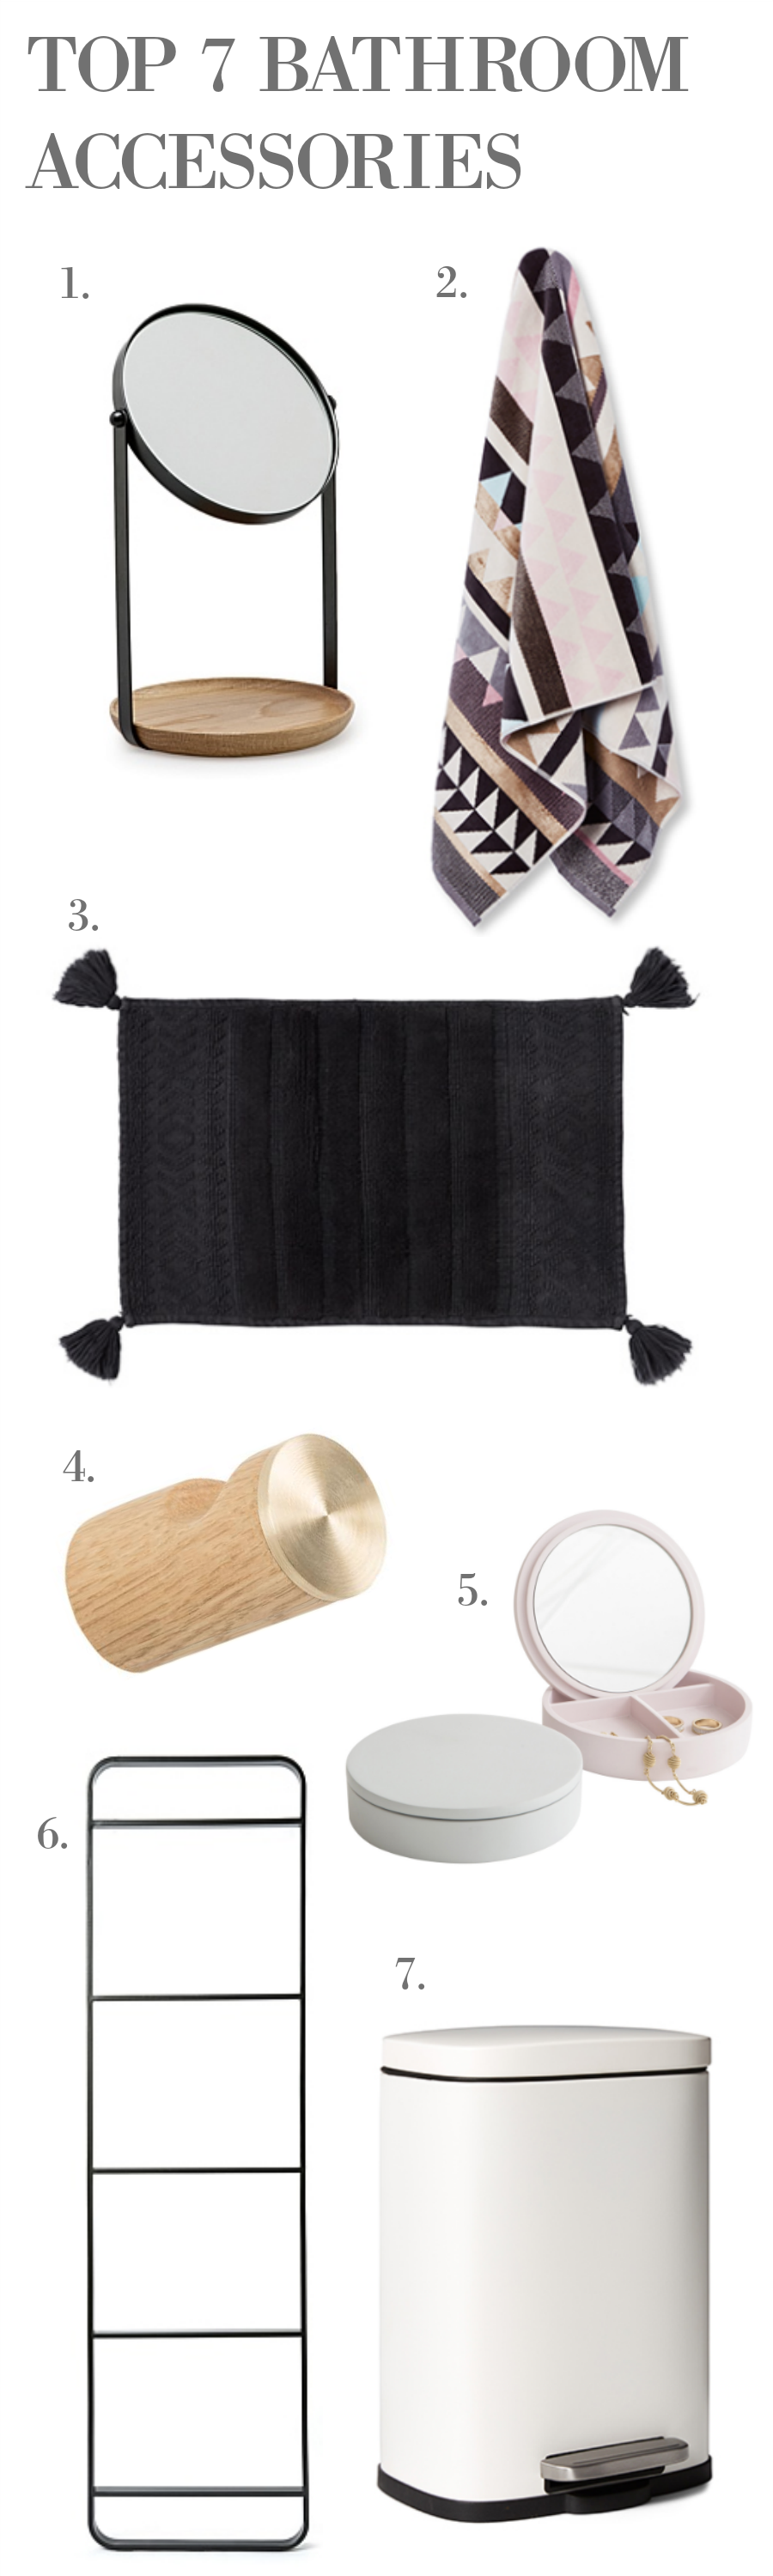 TOP 7 stylish bathroom accessories